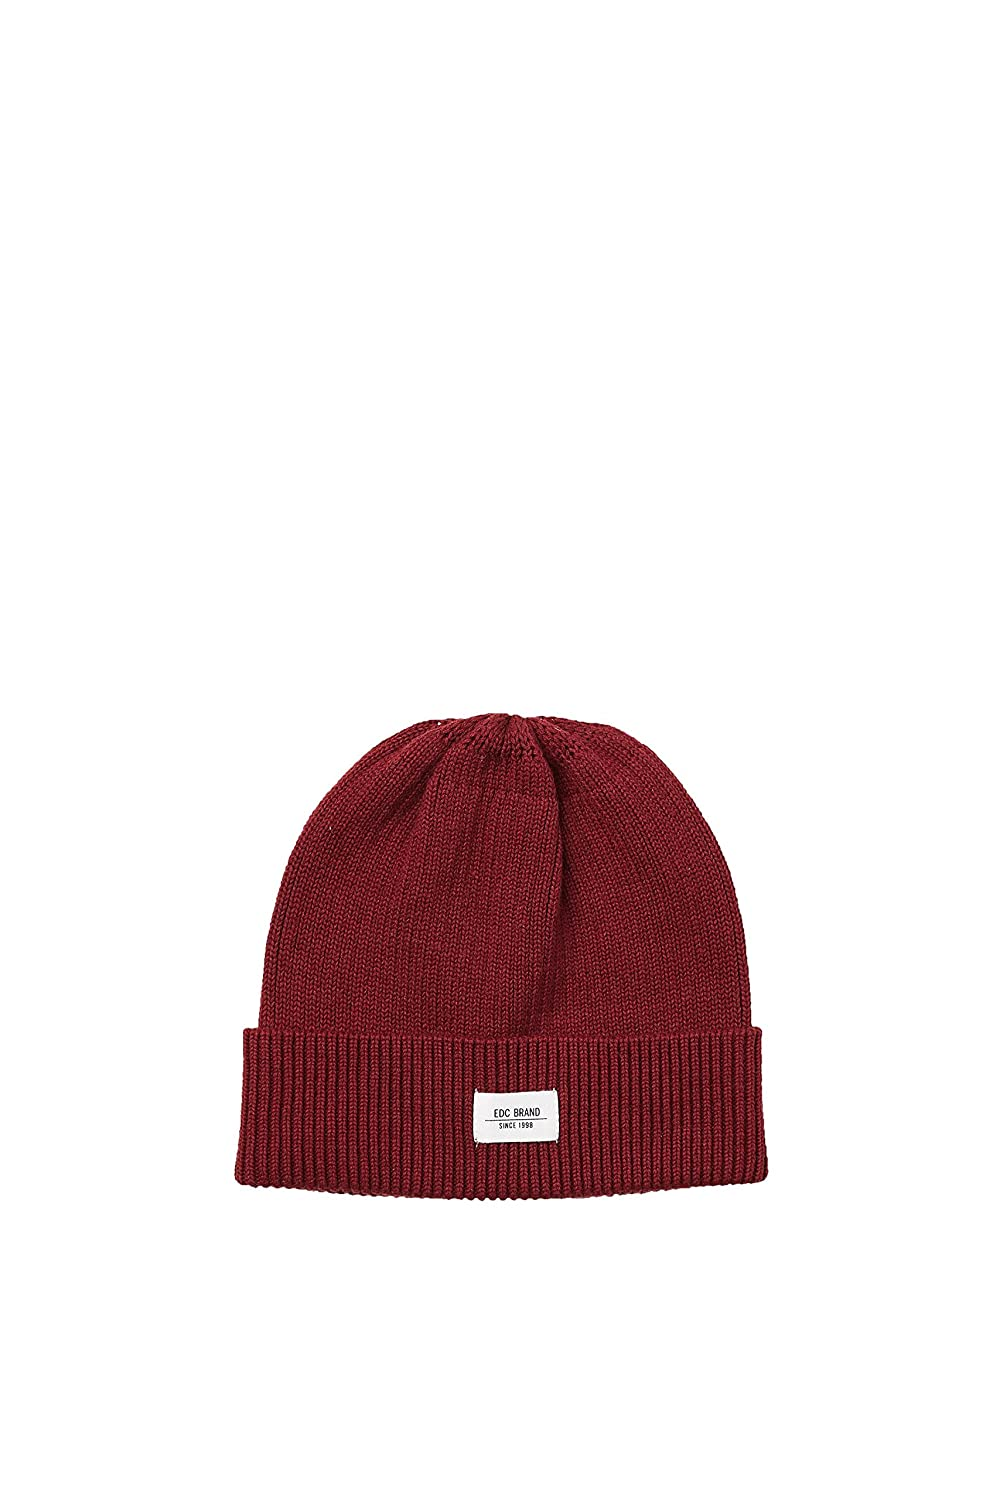 edc by Esprit Accessoires Men s 028ca2p003 Beanie, (Dark Old Pink 675), One  (Size  1SIZE)  Amazon.co.uk  Clothing 3ae993c68ff